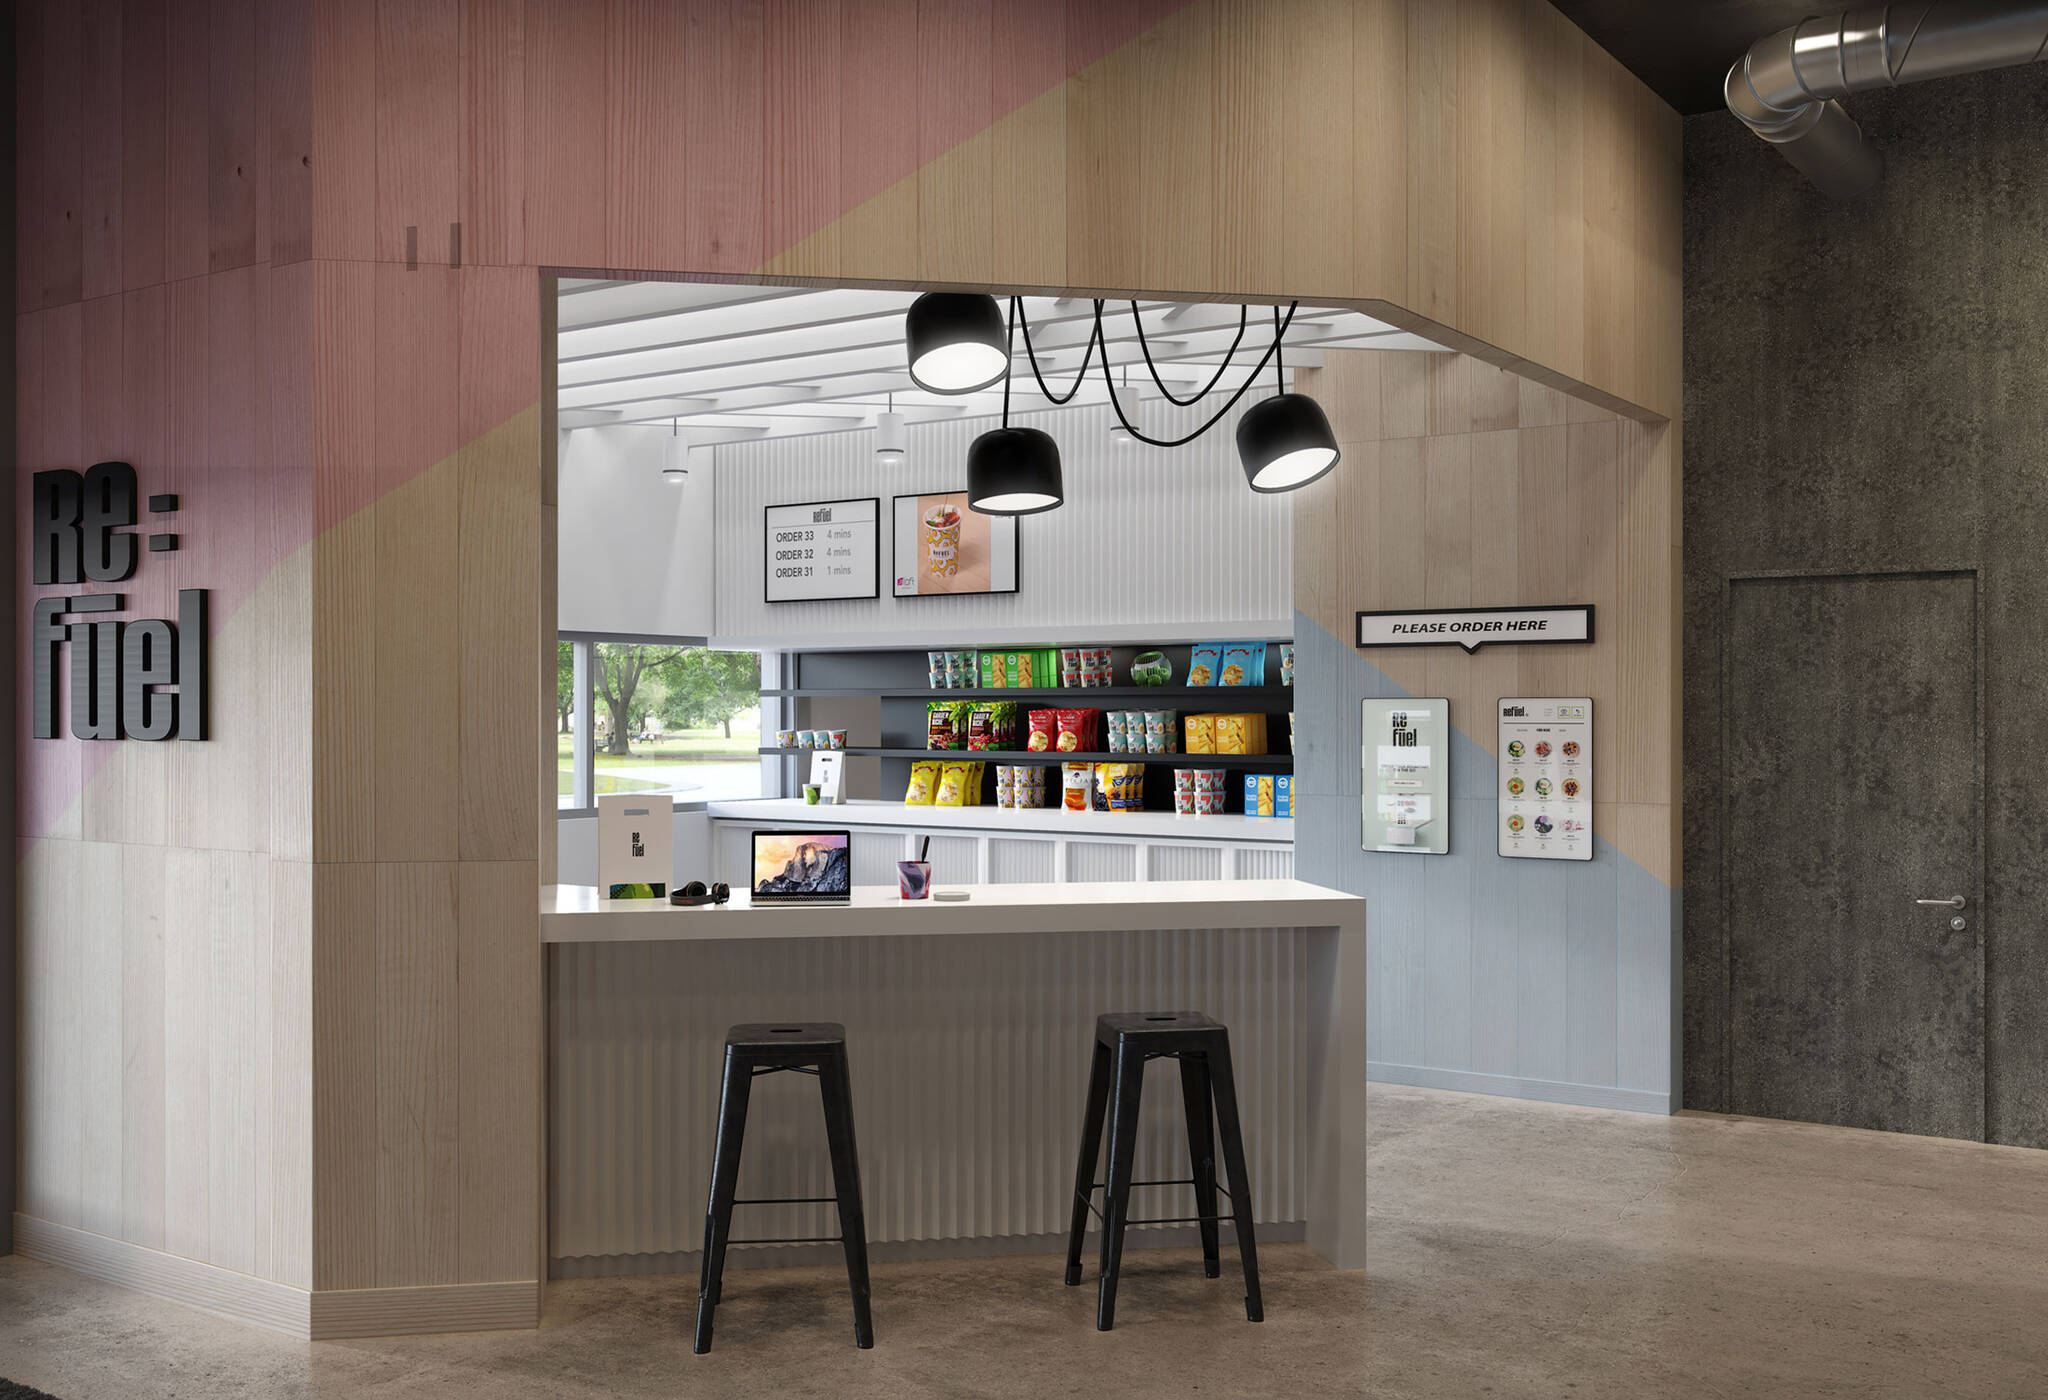 Refuel bar of the Aloft Generation 4 Hotel project for Marriott International designed by the architecture studio Danny Forster & Architecture